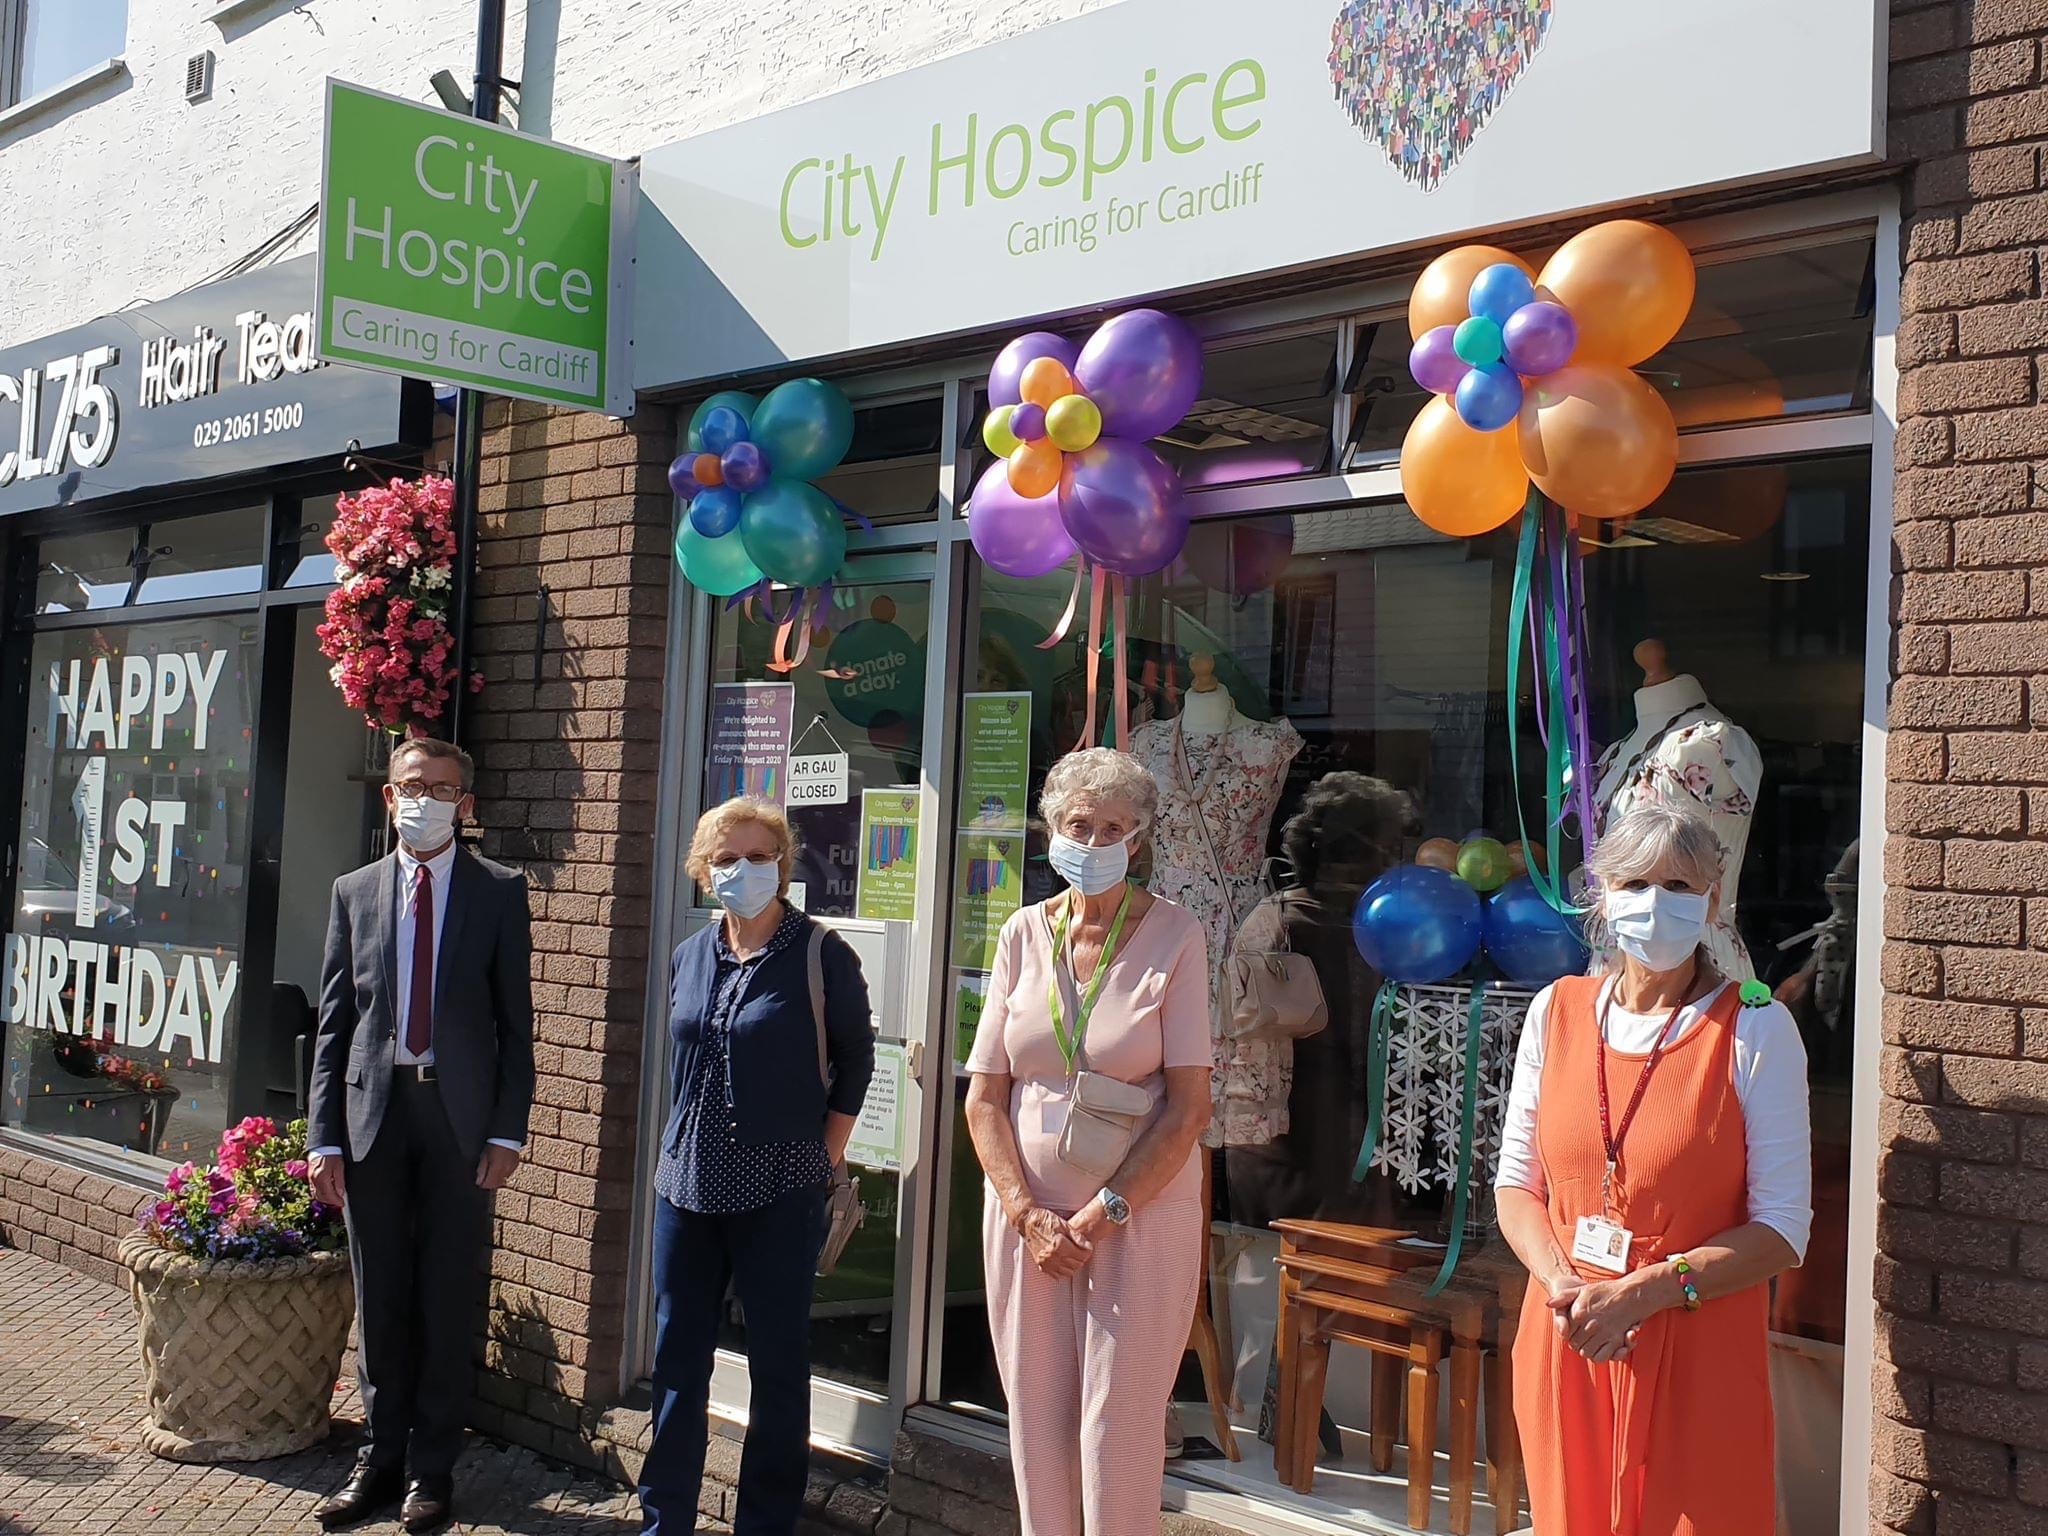 City Hospice volunteers stand outside the charity shop